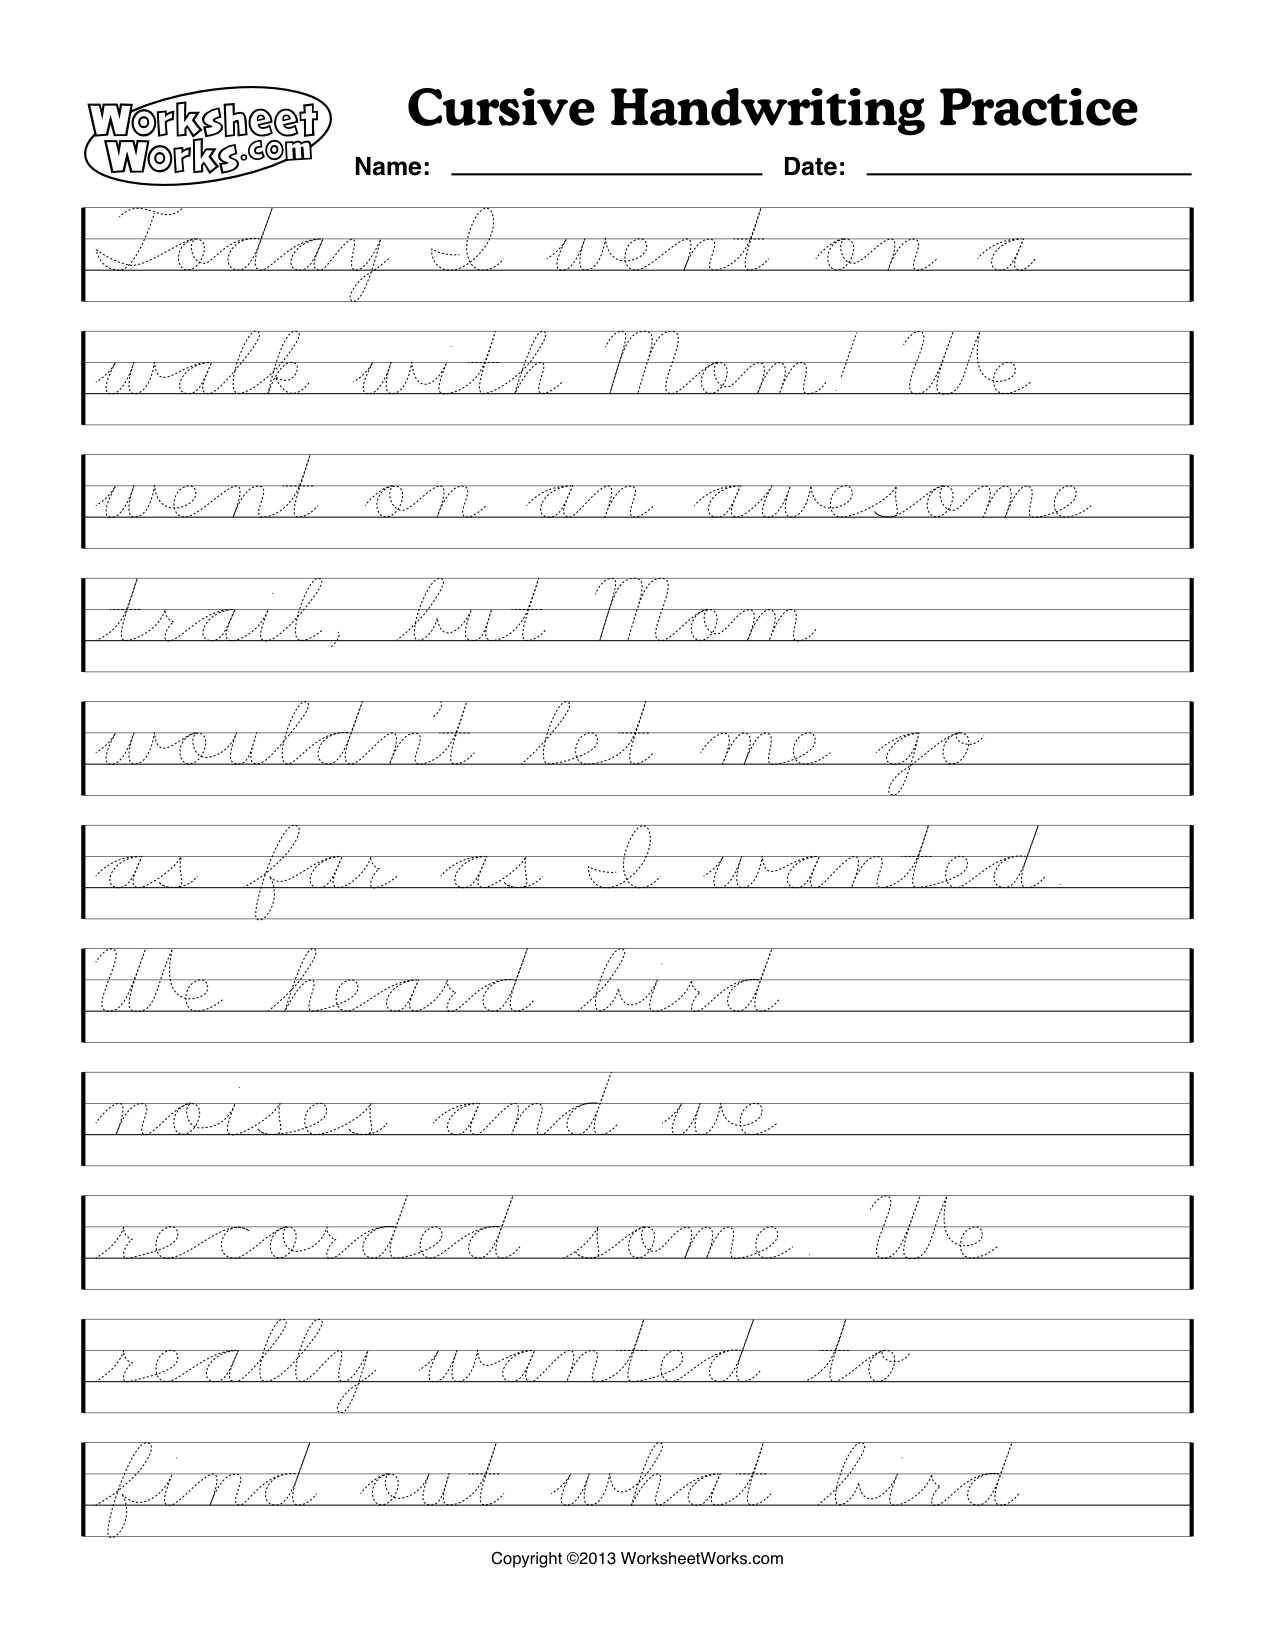 Customize Cursive Writing Sheets